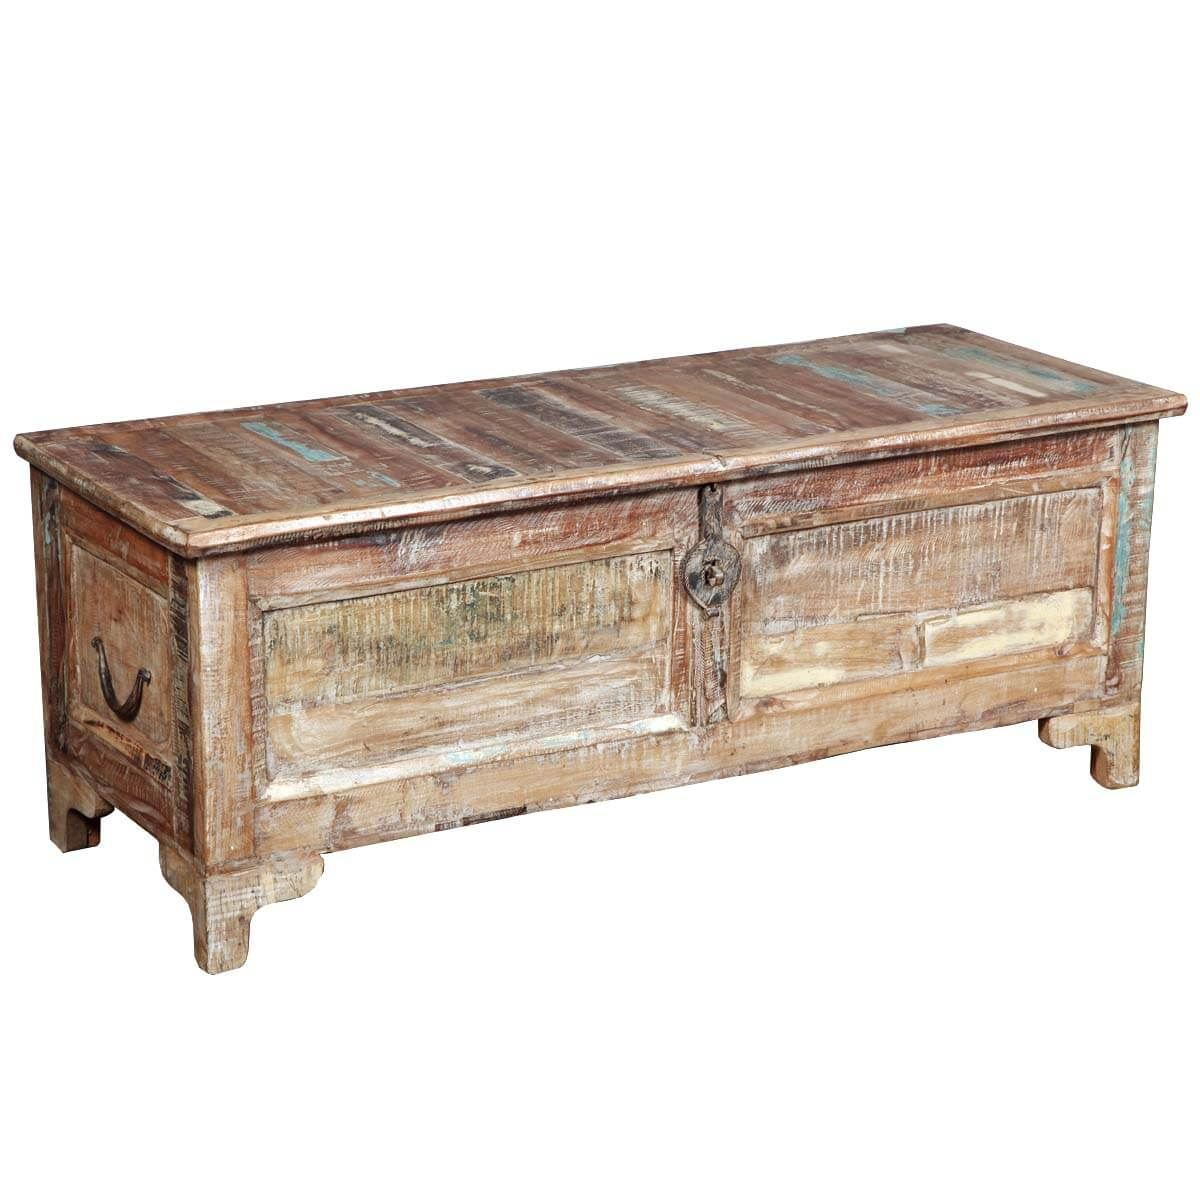 Rustic Reclaimed Wood Storage Coffee Table Chest: coffee table chest with storage